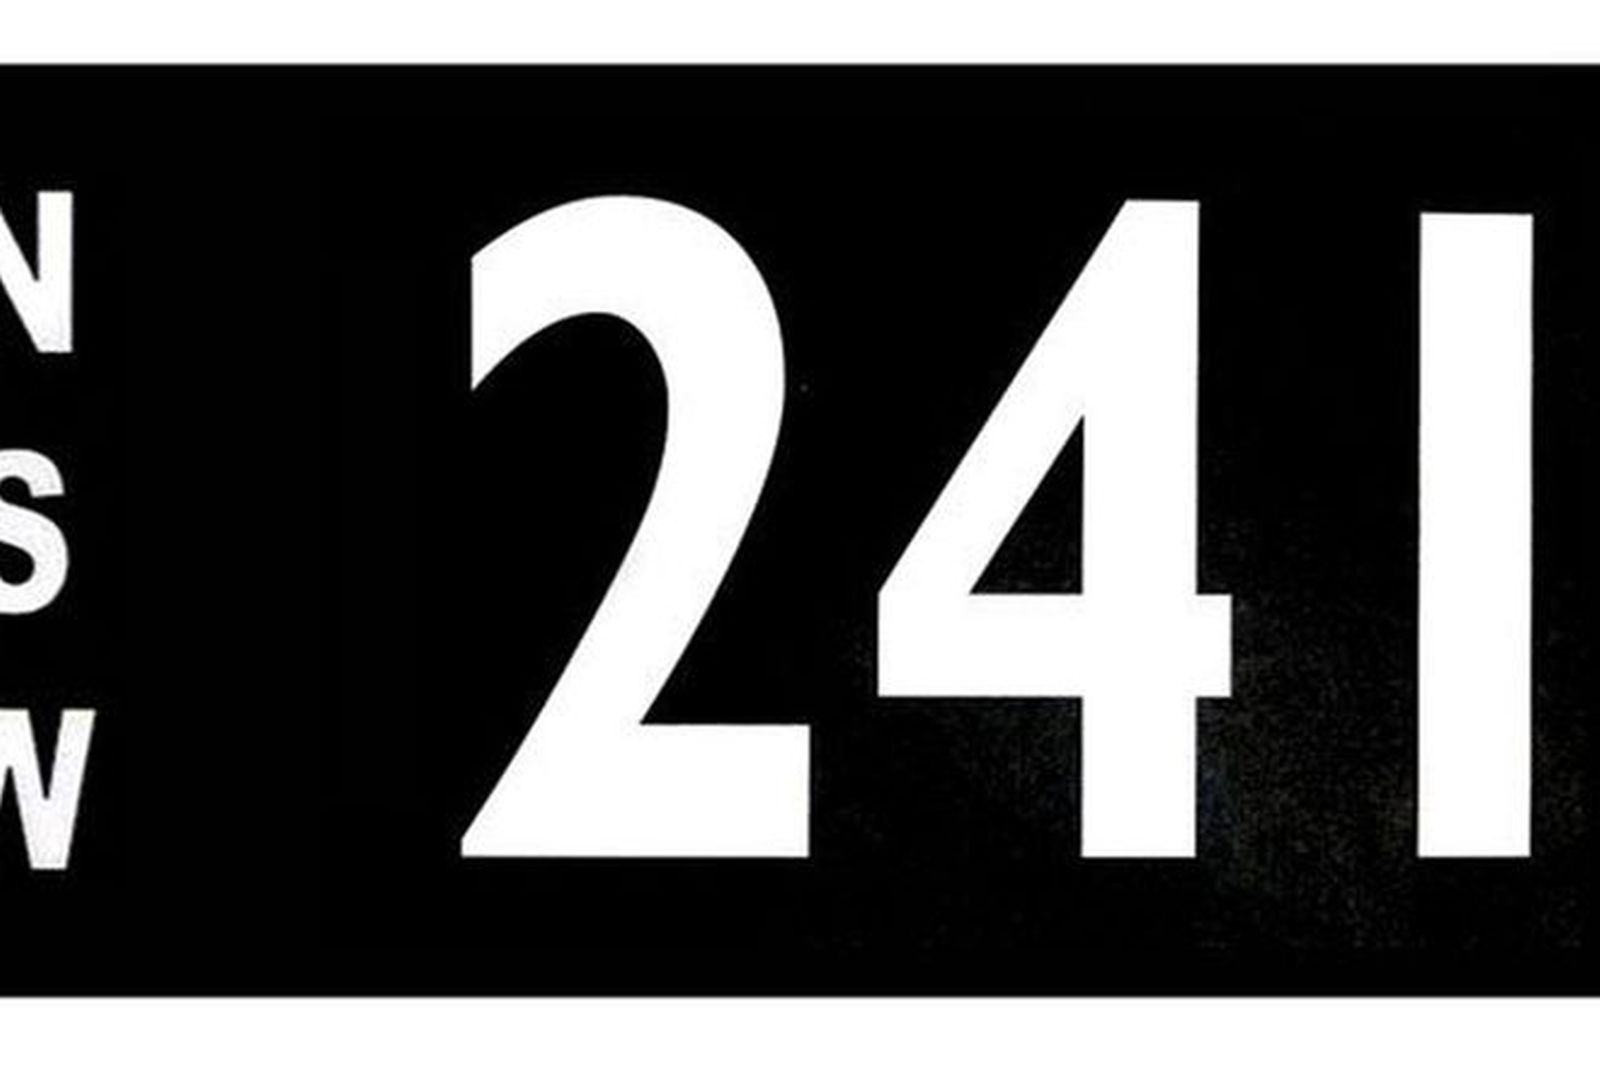 NSW Numerical Number Plates '241'